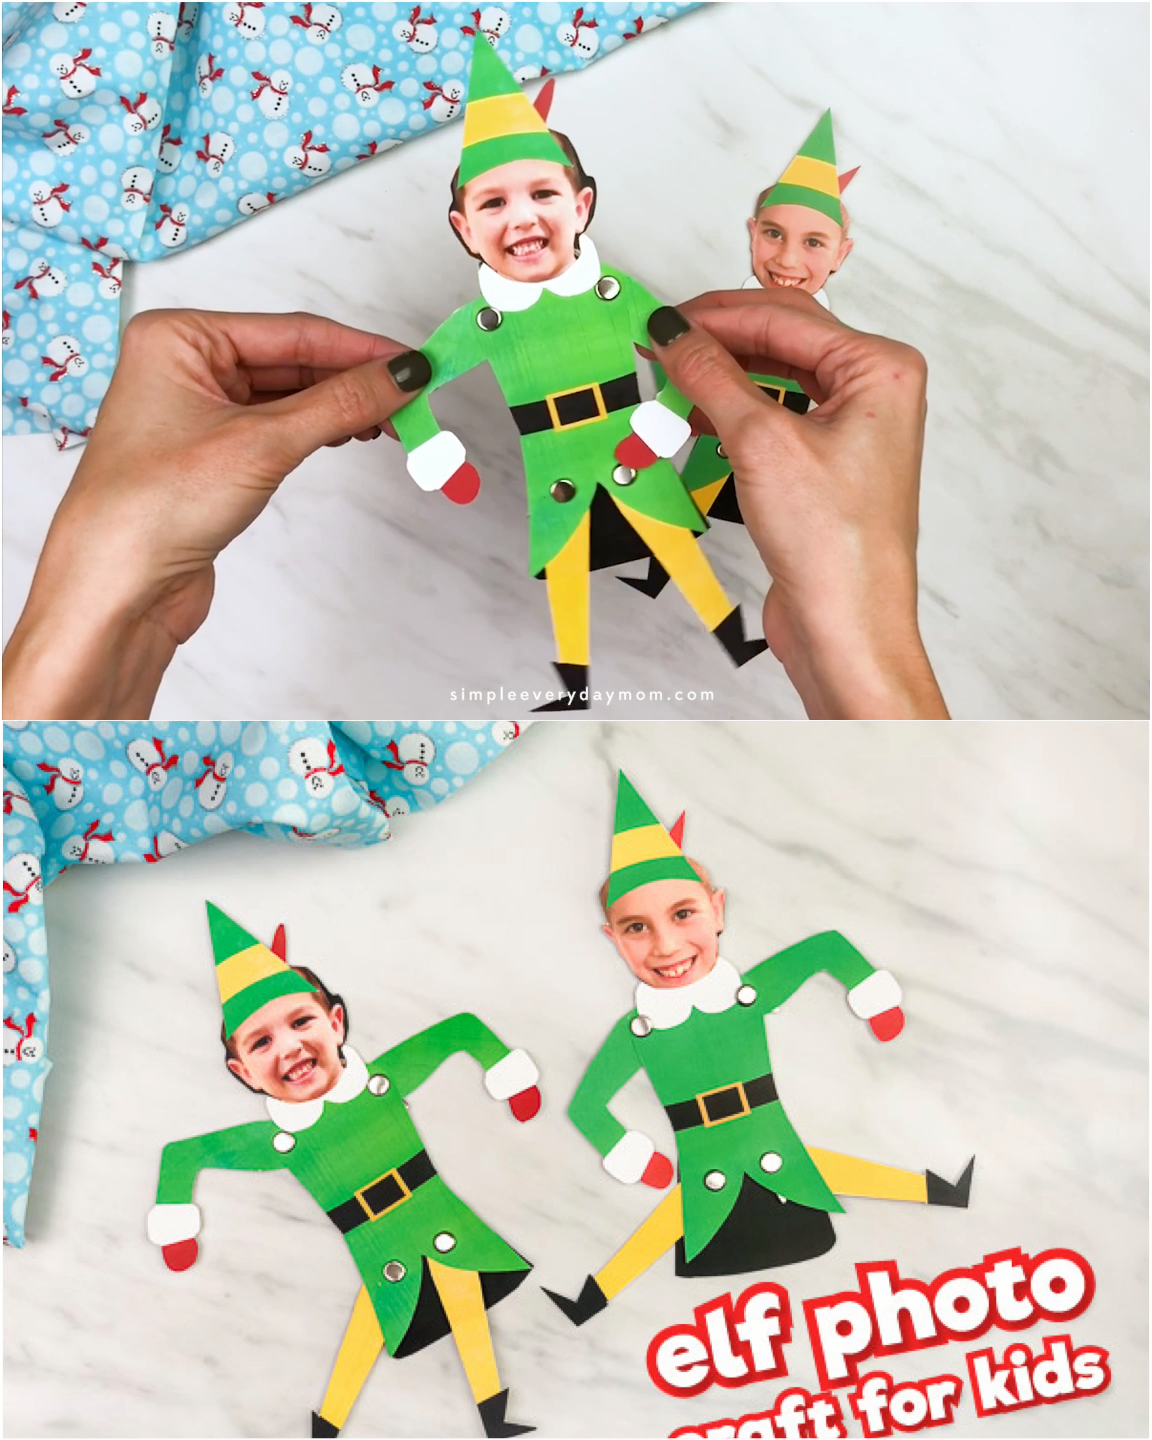 Turn your kids into Buddy the Elf with this simple paper craft for kids! It's a fun Christmas activity the whole family will love. Just download the free printable template and you're set!  #simpleeverydaymom #kidscrafts #kidsactivities #elfcrafts #christmascrafts #xmascrafts